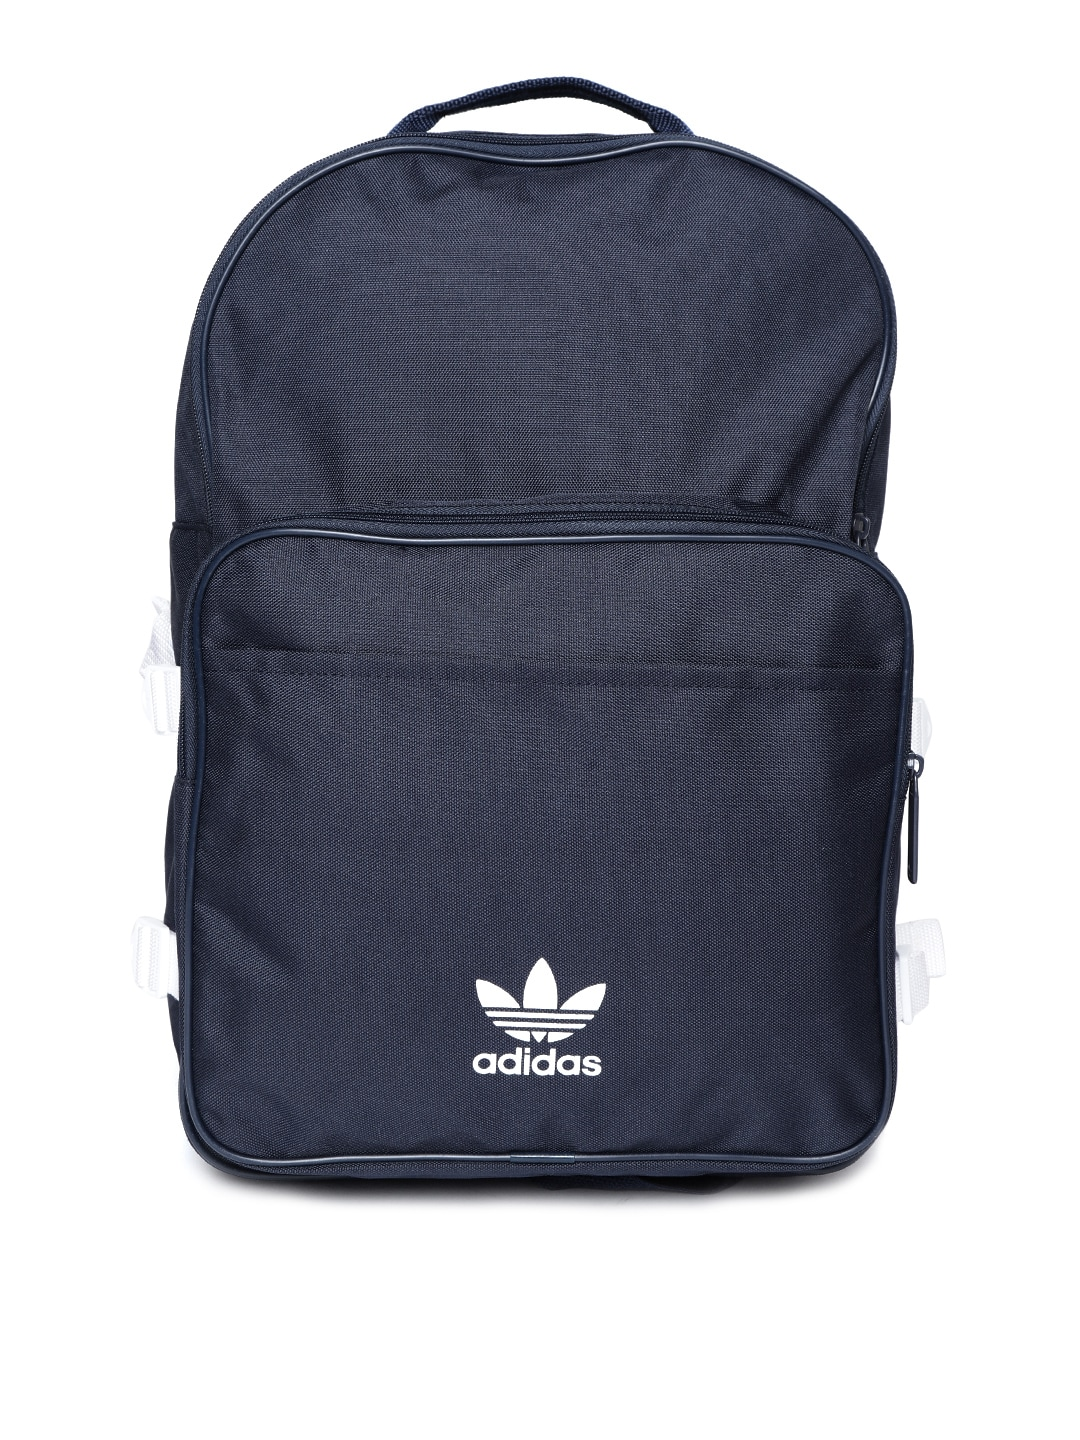 2f14535adfa76 Adidas Backpack Bags - Buy Adidas Backpack Bags online in India